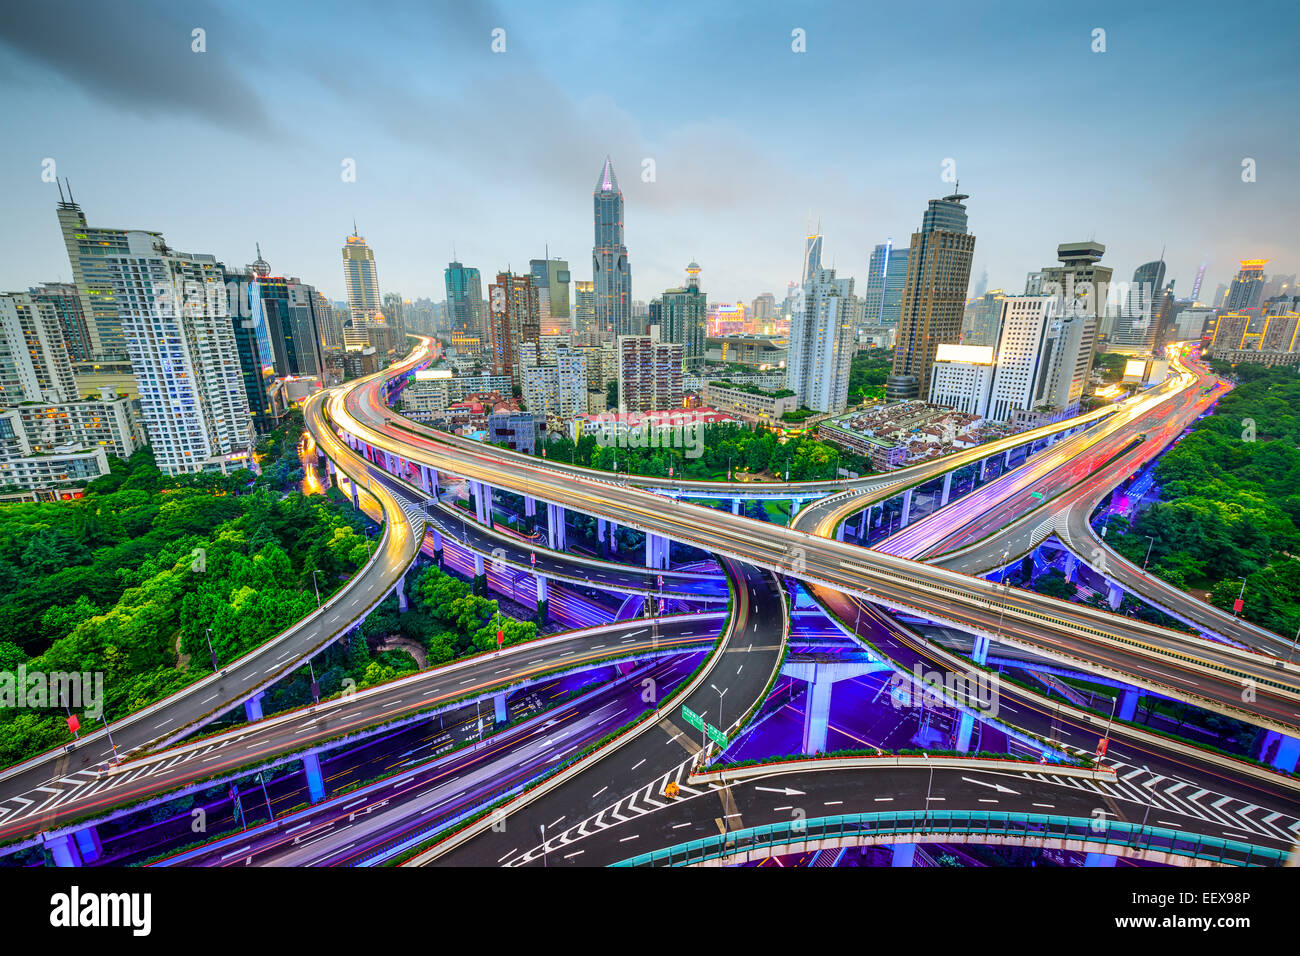 Shanghai, China aerial view and skyline over highways. - Stock Image